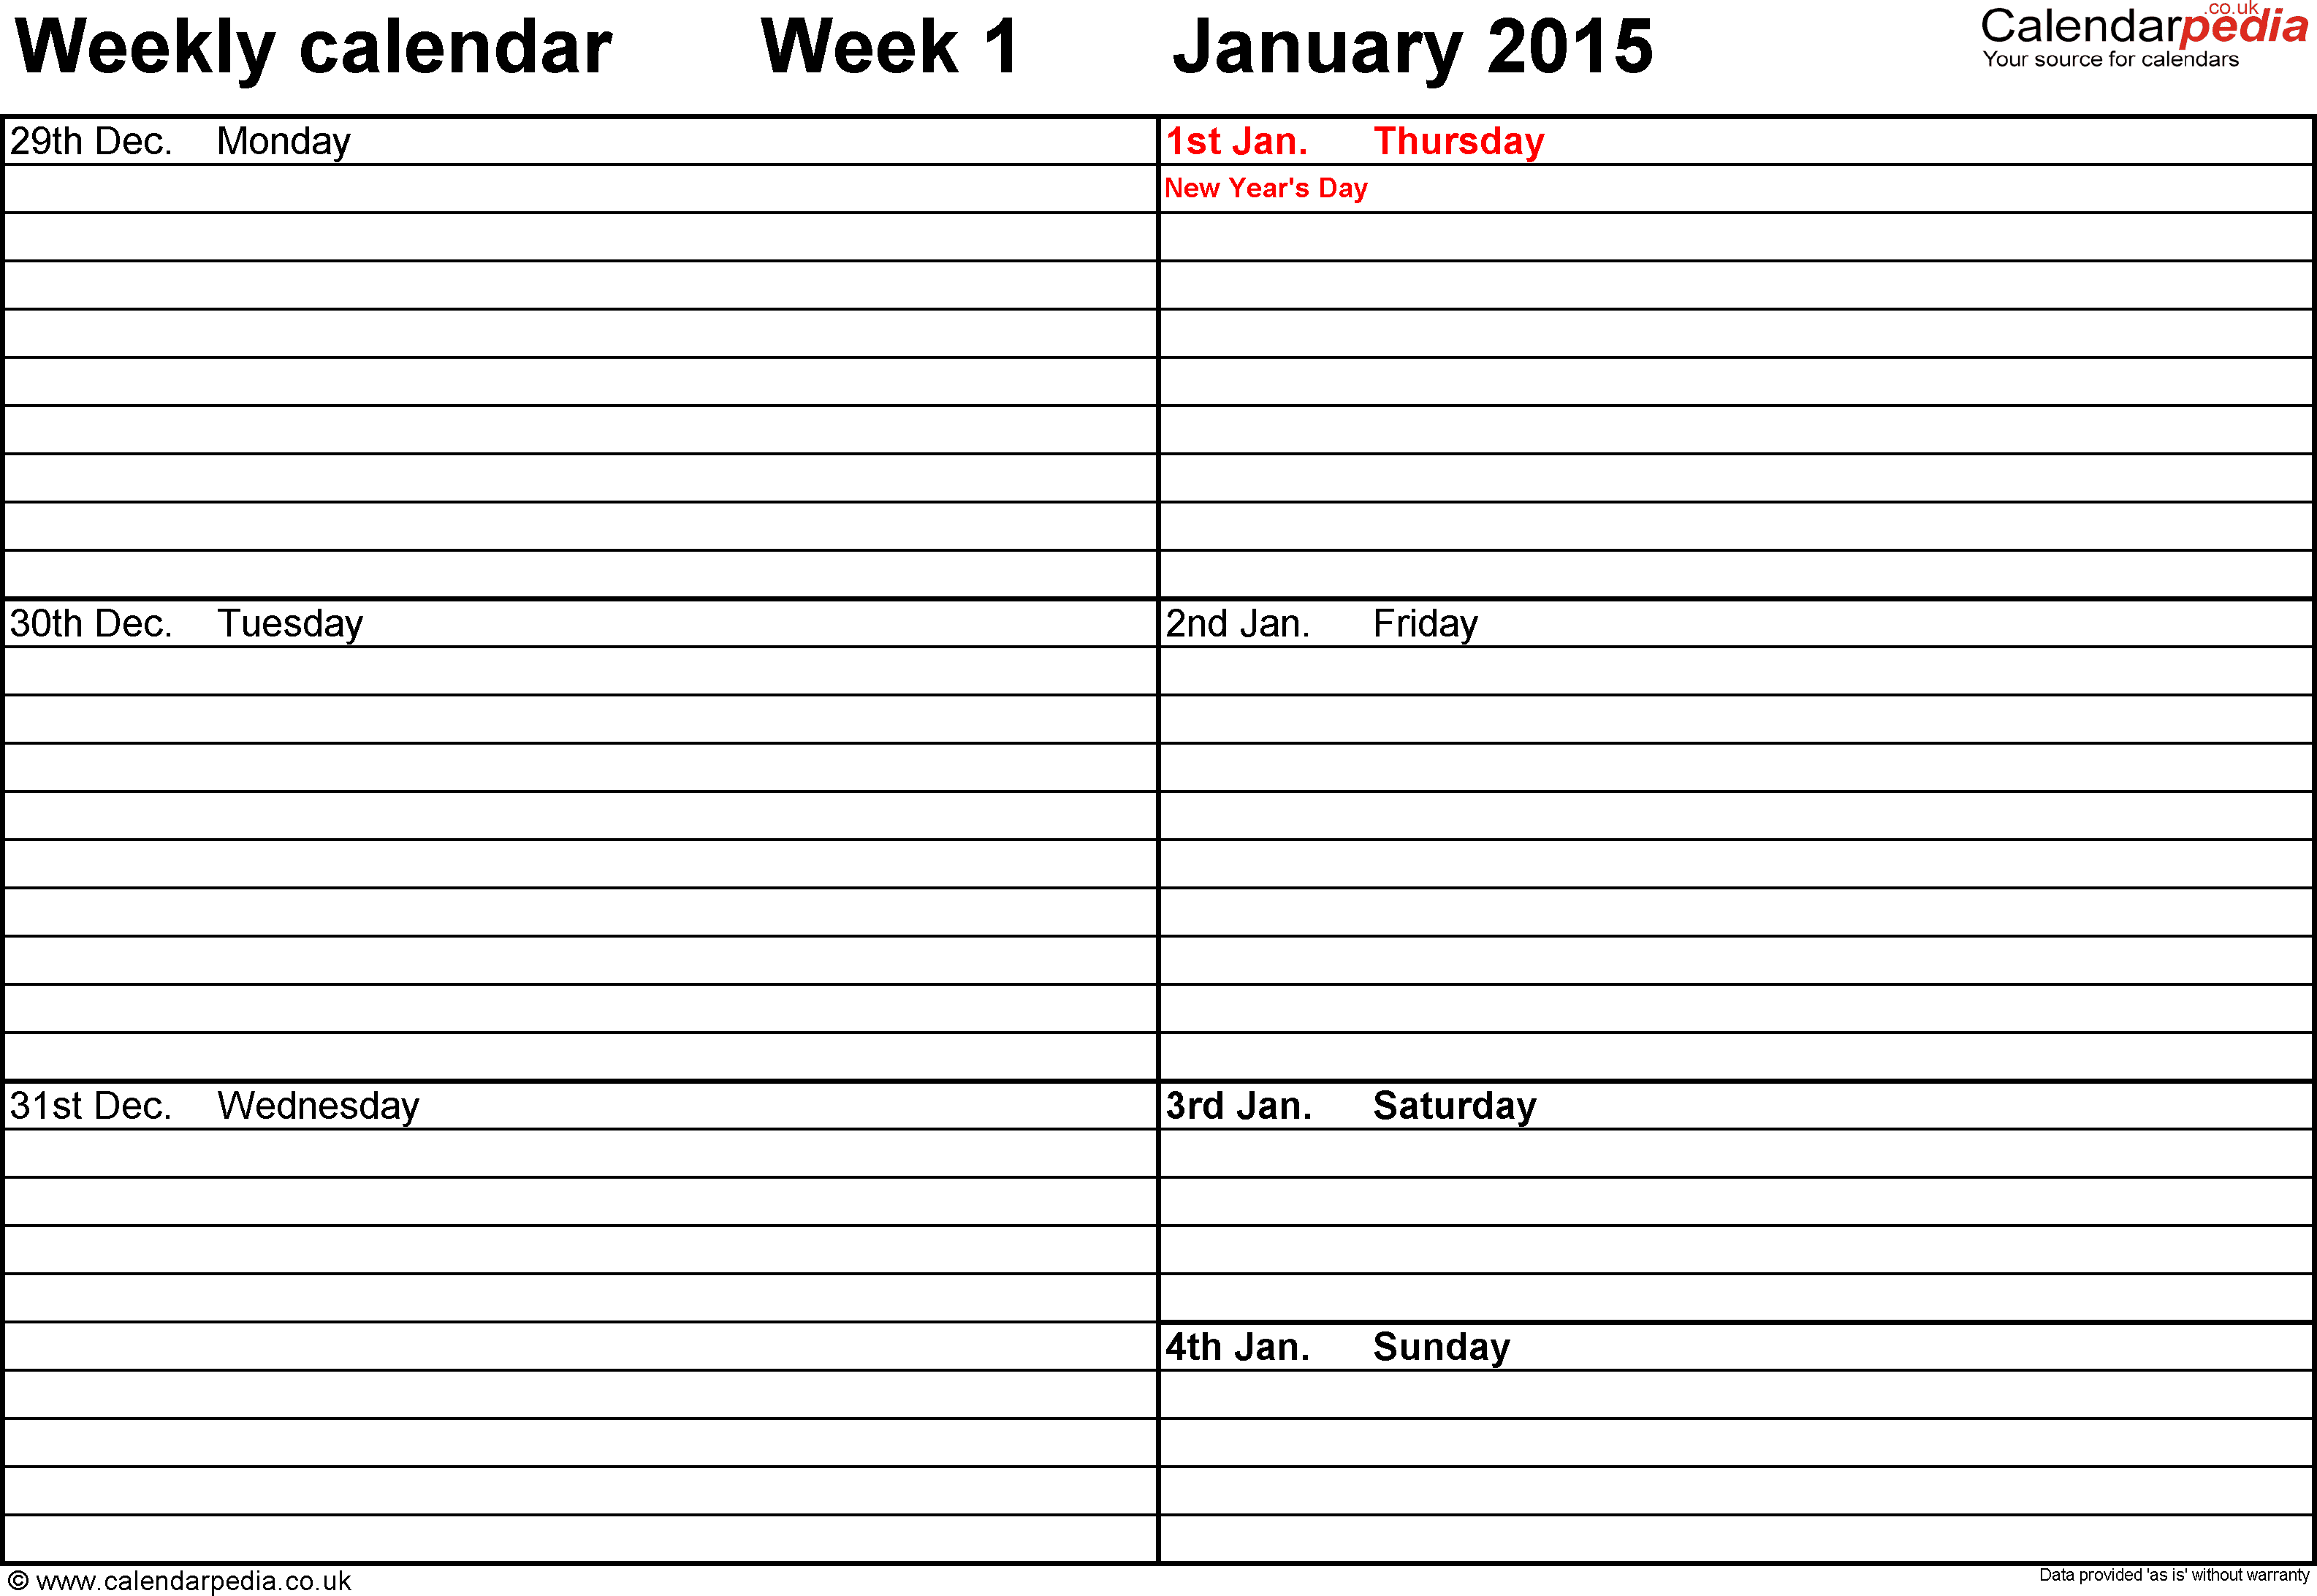 Printable Weekly Calendar Template 2015